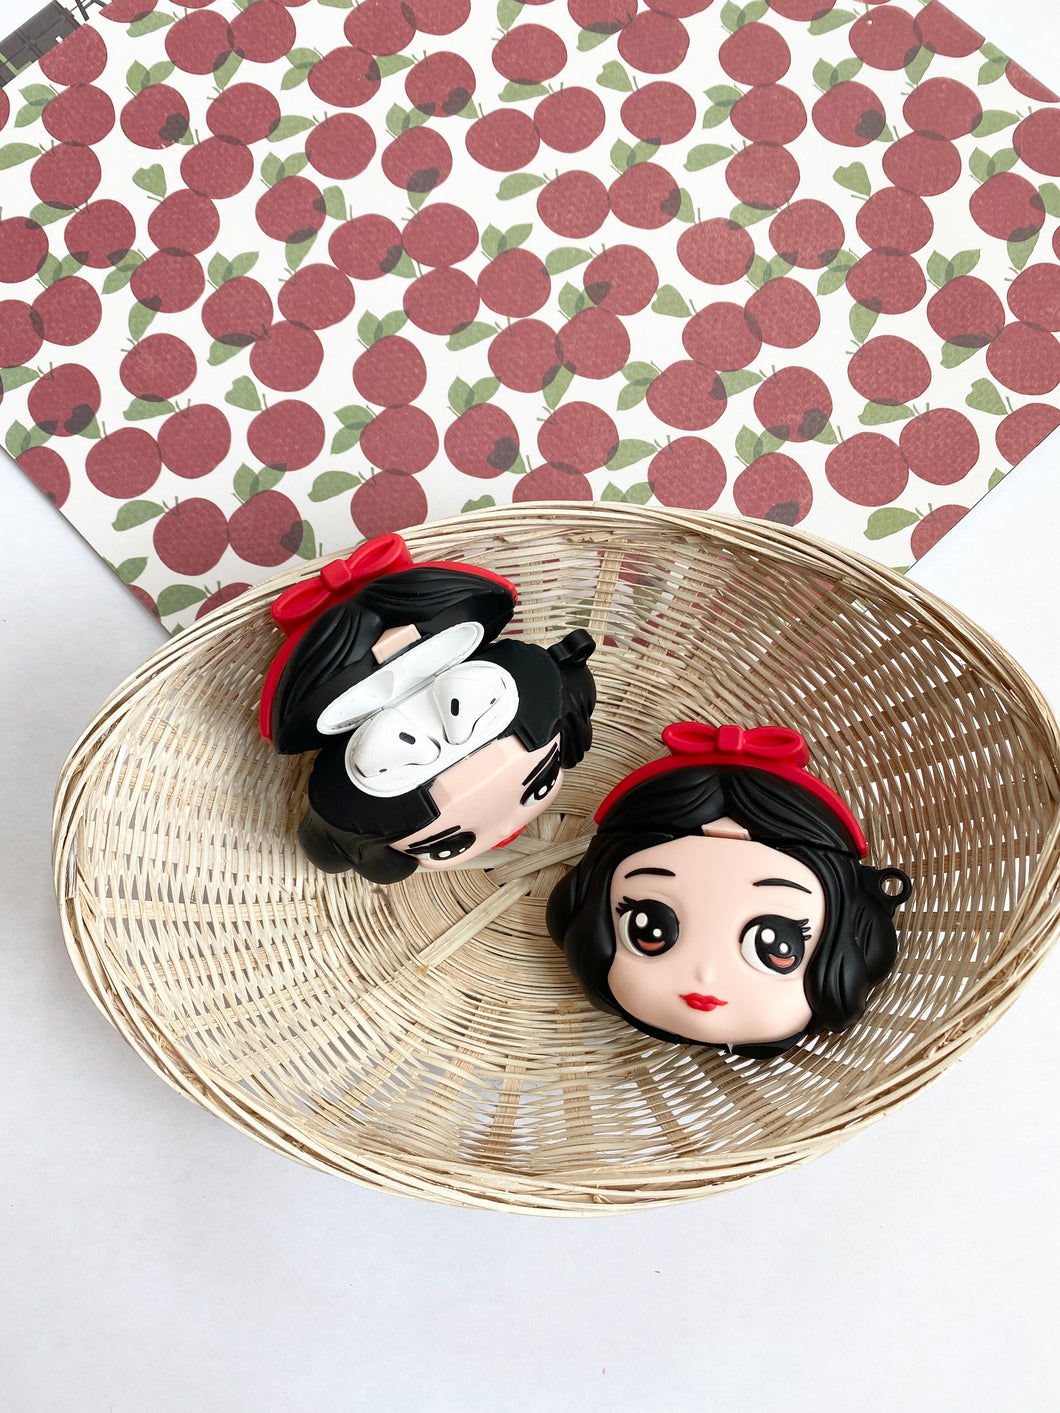 Snow White Cartoon Character 3D Silicone Airpod Case Gen 1/2 with Keychain